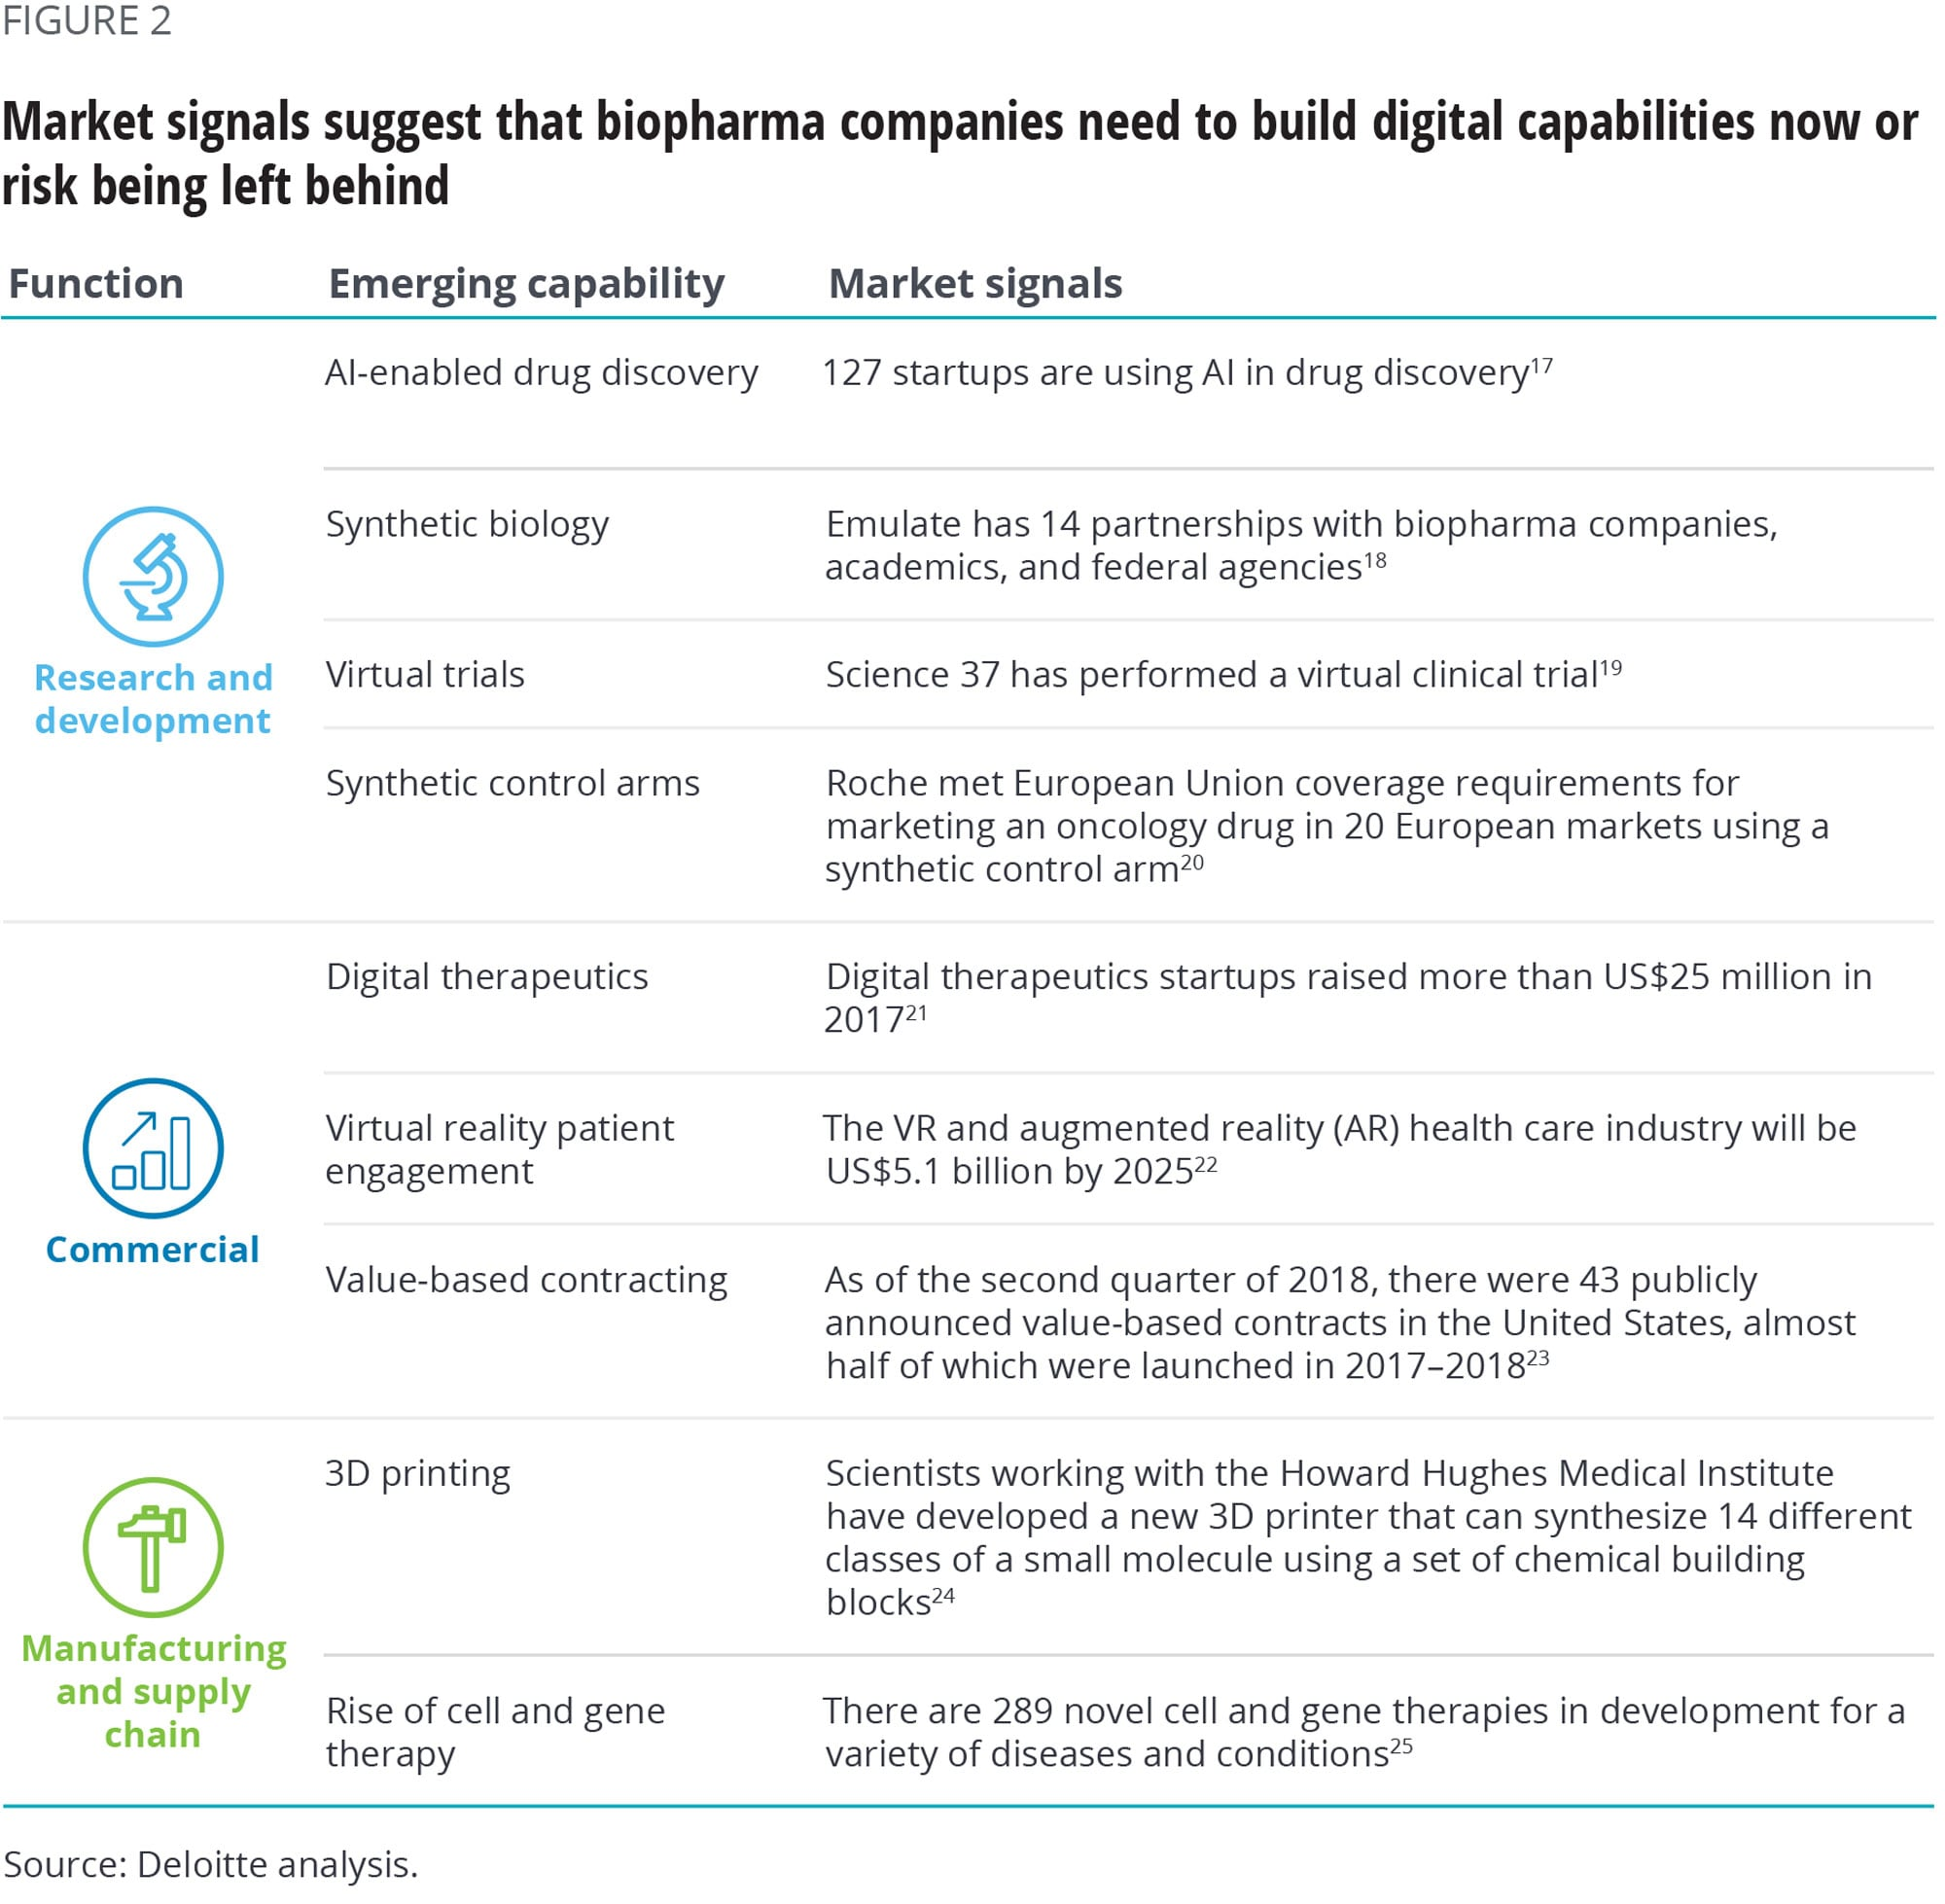 Market signals suggest that biopharma companies need to build digital capabilities now or risk being left behind